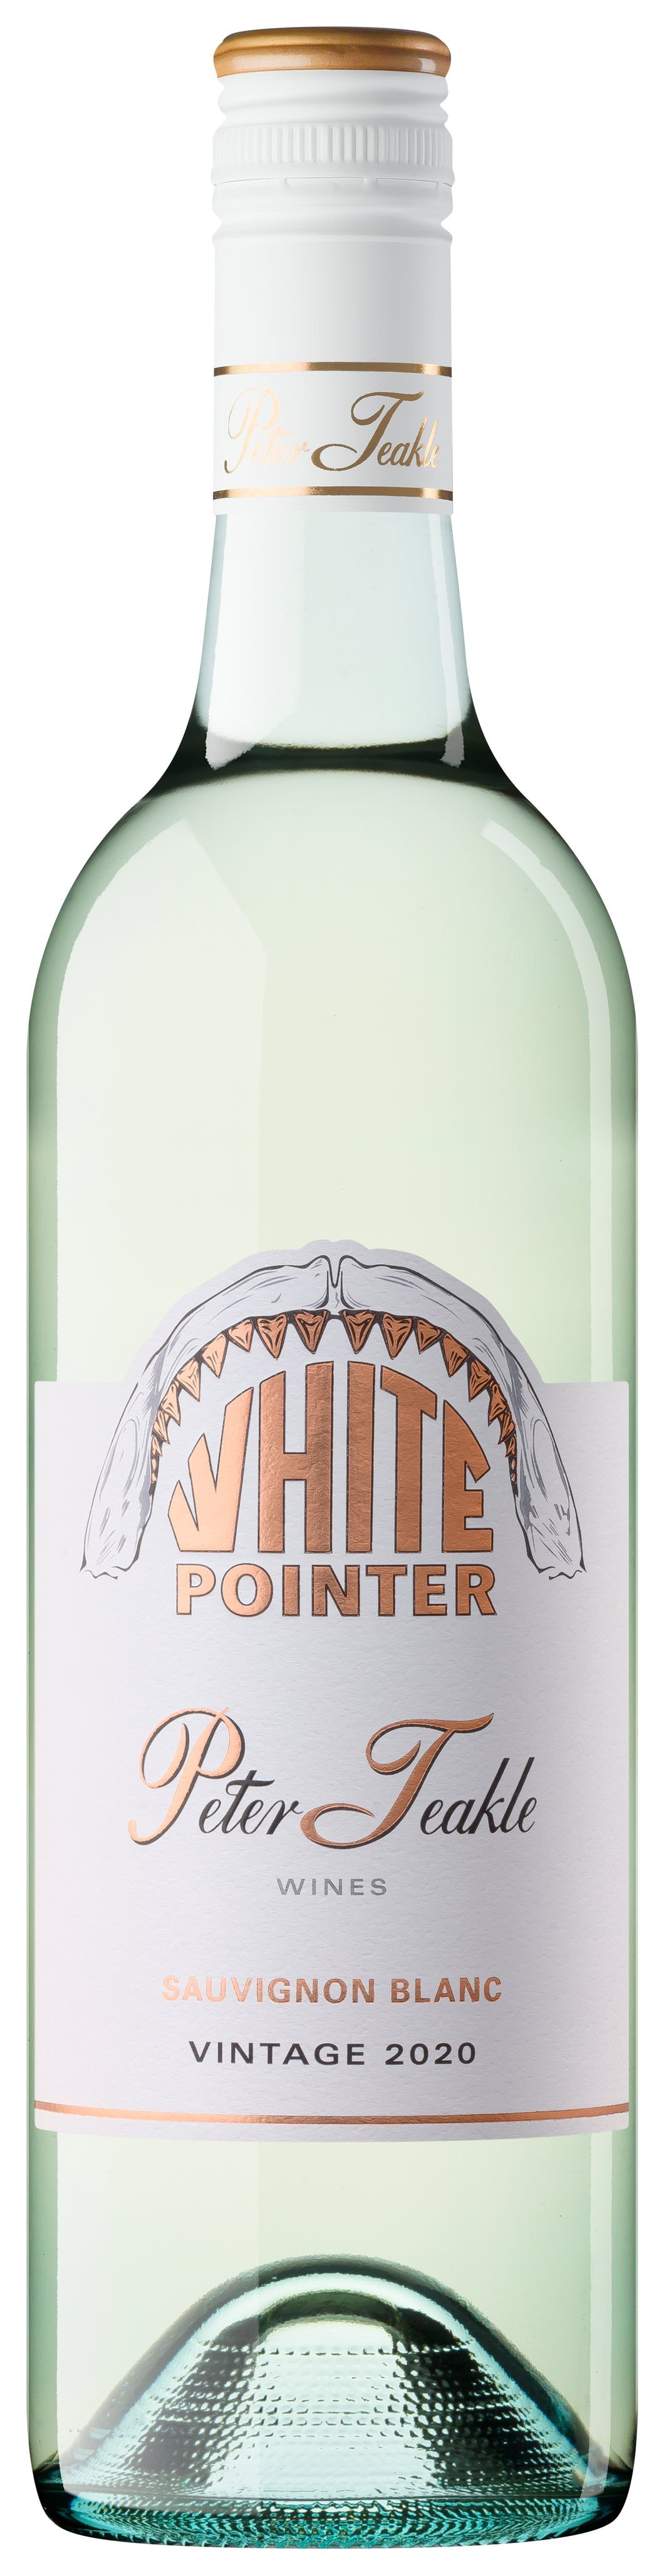 2020 White Pointer Sauvignon Blanc